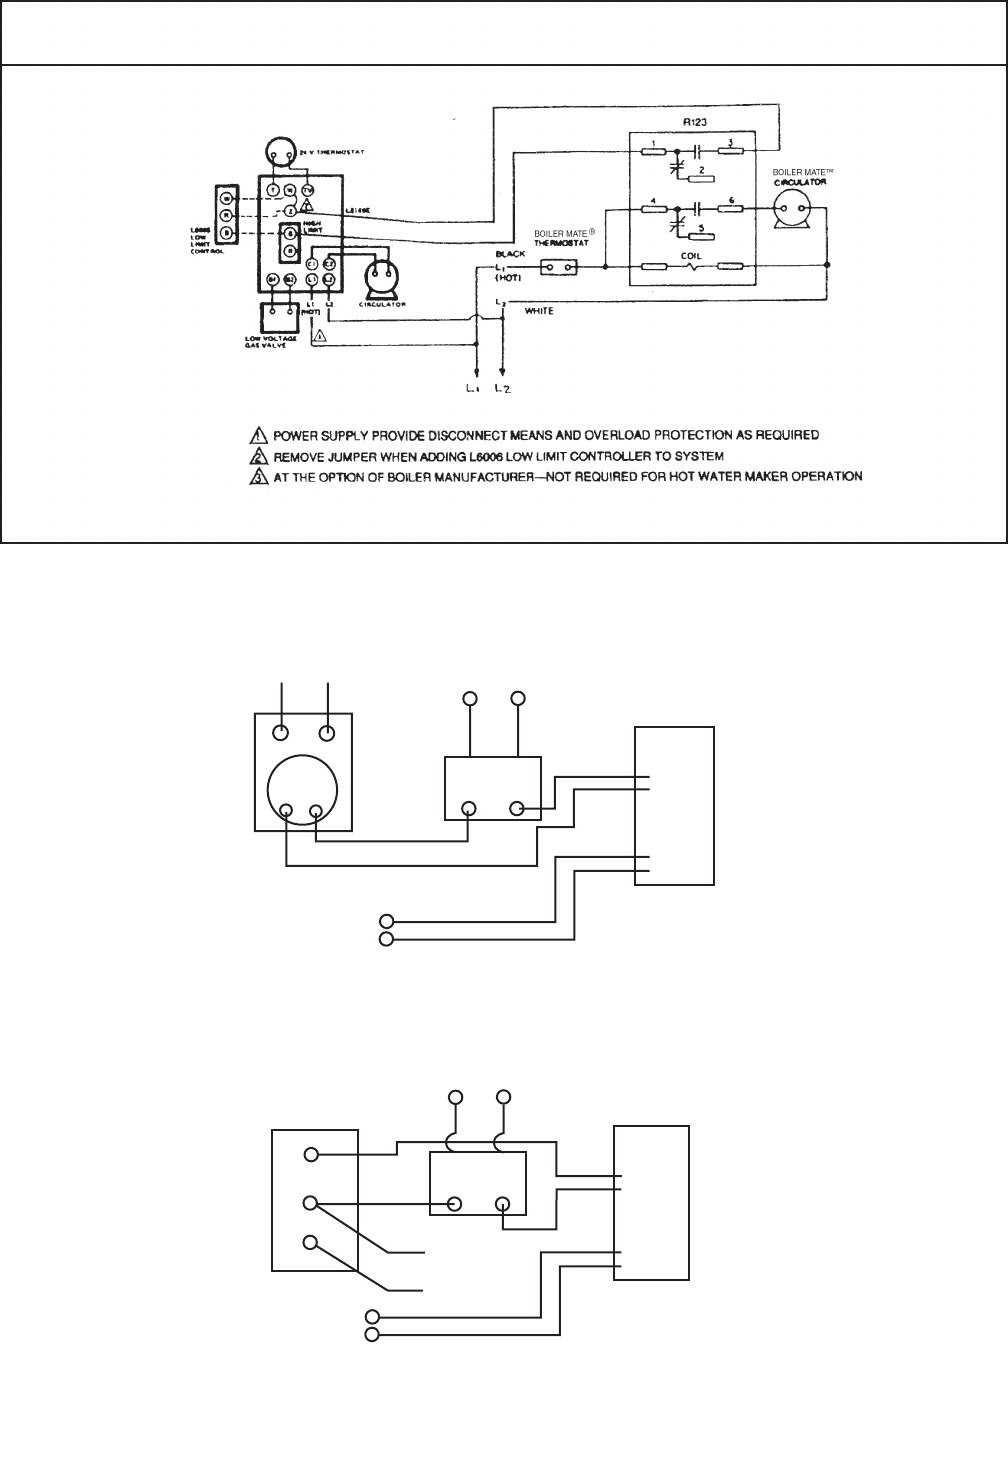 amtrol boilermate rtr installation manual 9040 586 07 08 indirect io rh usermanual wiki amtrol 940r101 wiring diagram installation amtrol wiring diagram reversing motor skill 3